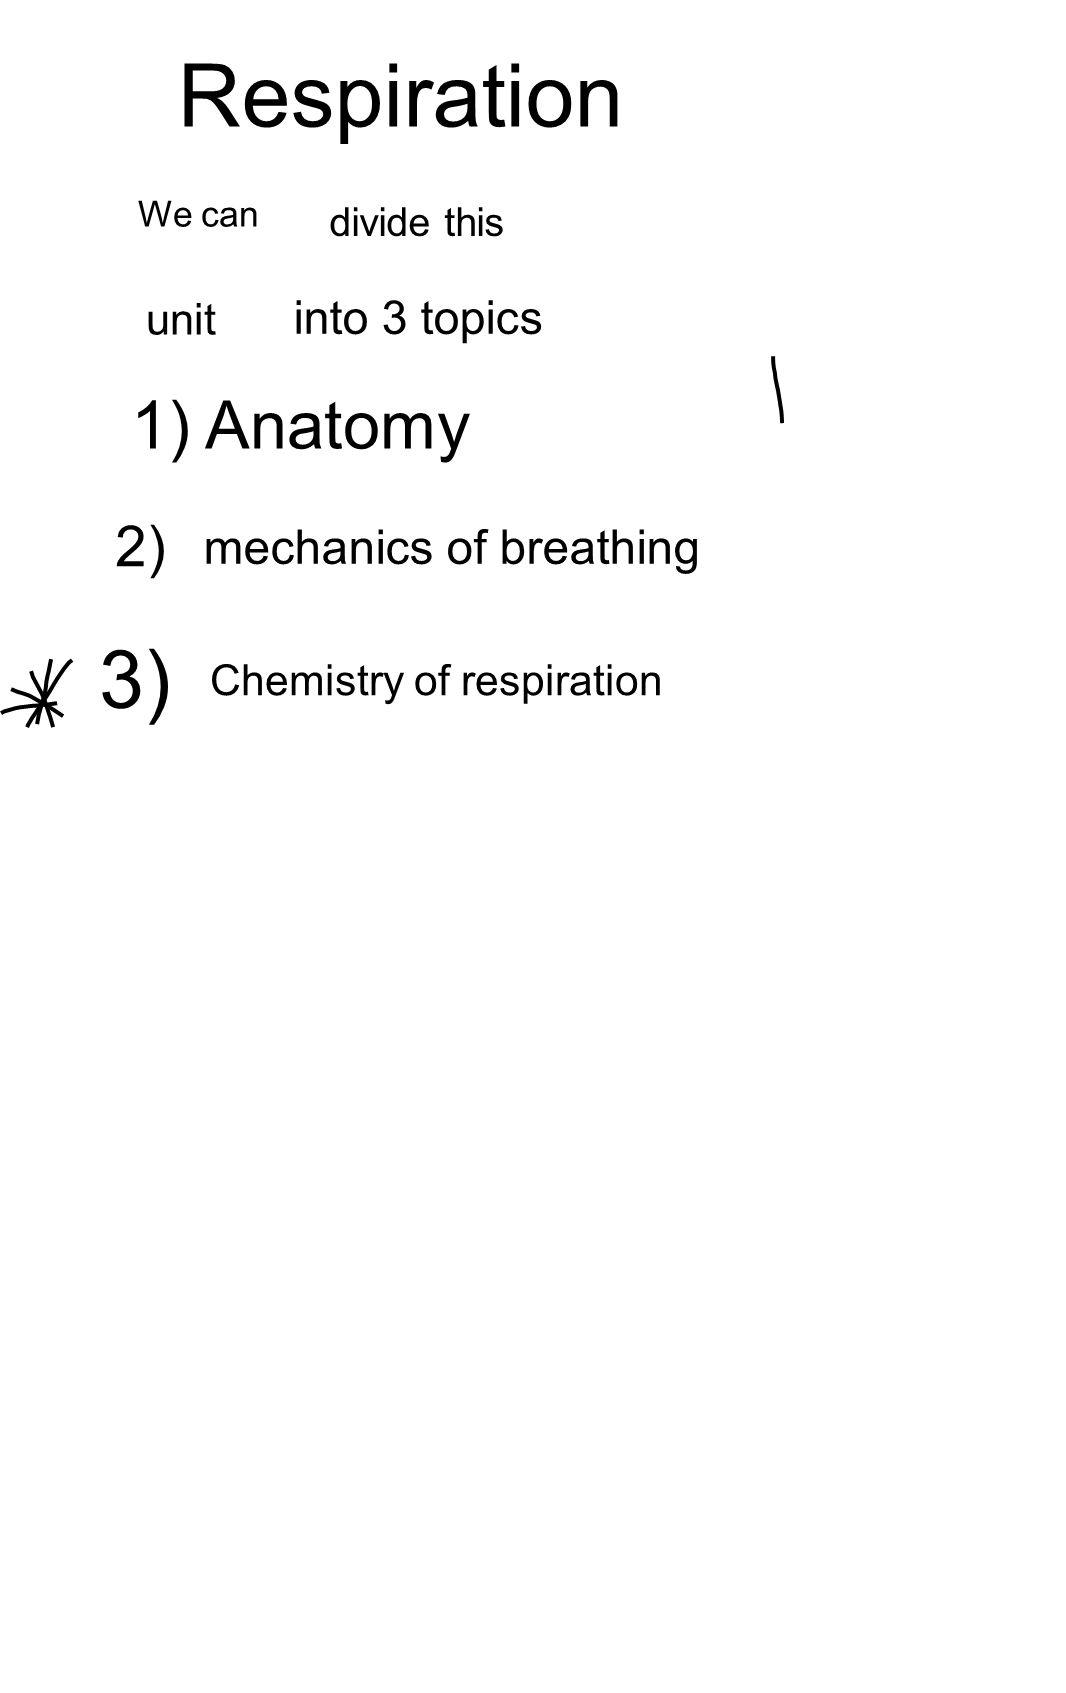 Respiration - Consists of 4 events l) Breathing (inhalation or inspiration / or expiration 2) External respiration exchange of gas between 1 and blood 3) Internal respiration The exchange of gases from the blood to the tissues 4) cellular respiration exhalation the alveoli (in the lungs)